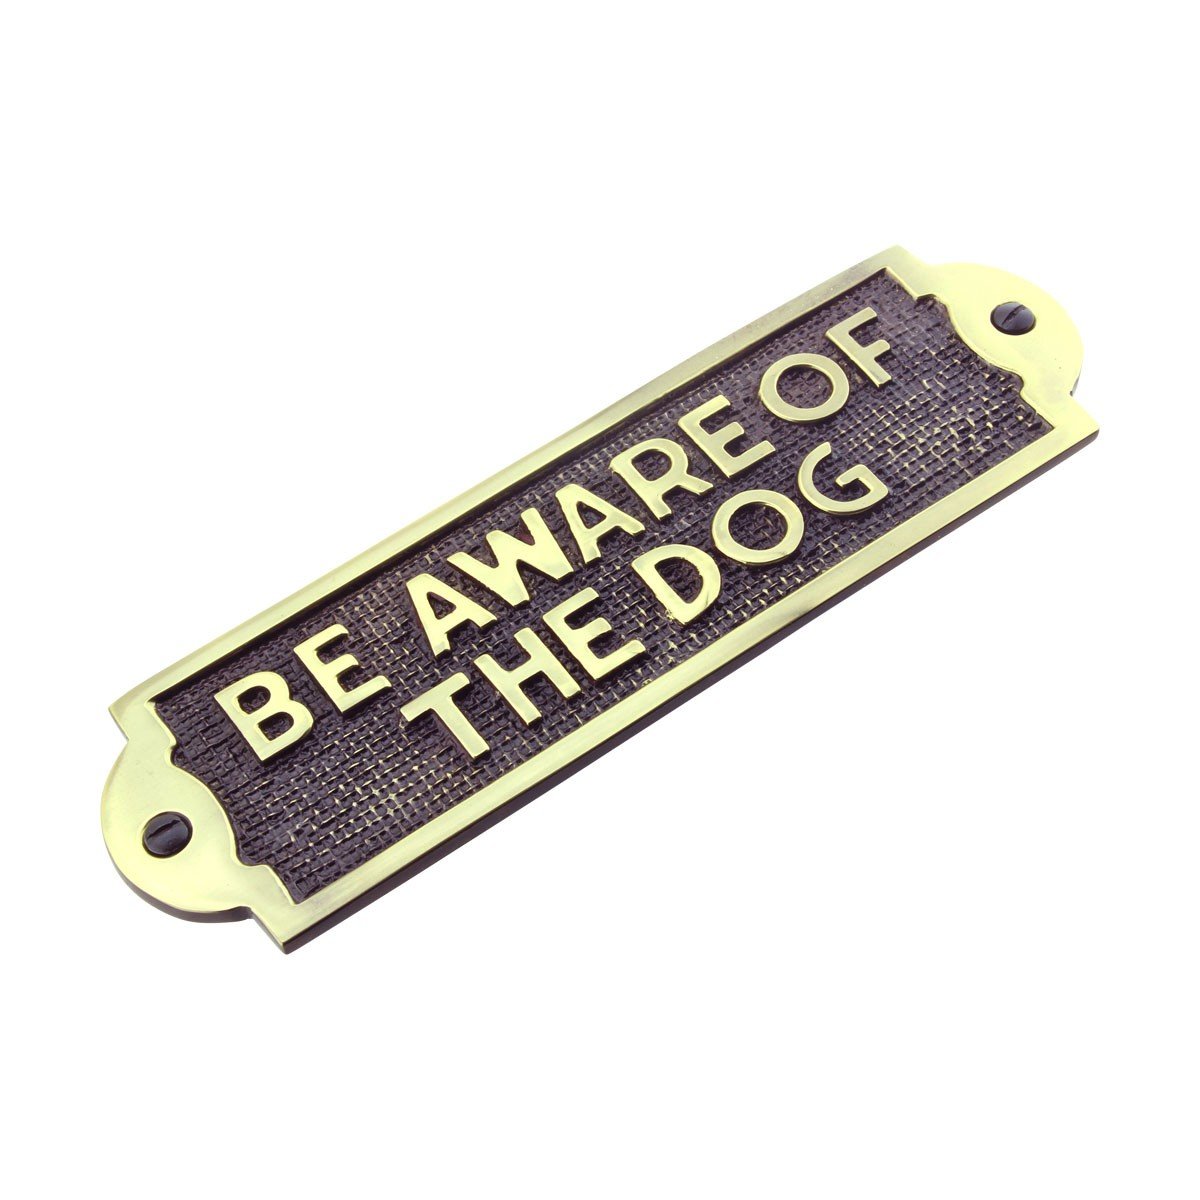 Polished Solid Brass Plaques Dog Sign BE AWARE OF THE DOG Brass Plate Dogs Doggo Pets Warning Trespassing Caution beware be aware pet signage plaque plate